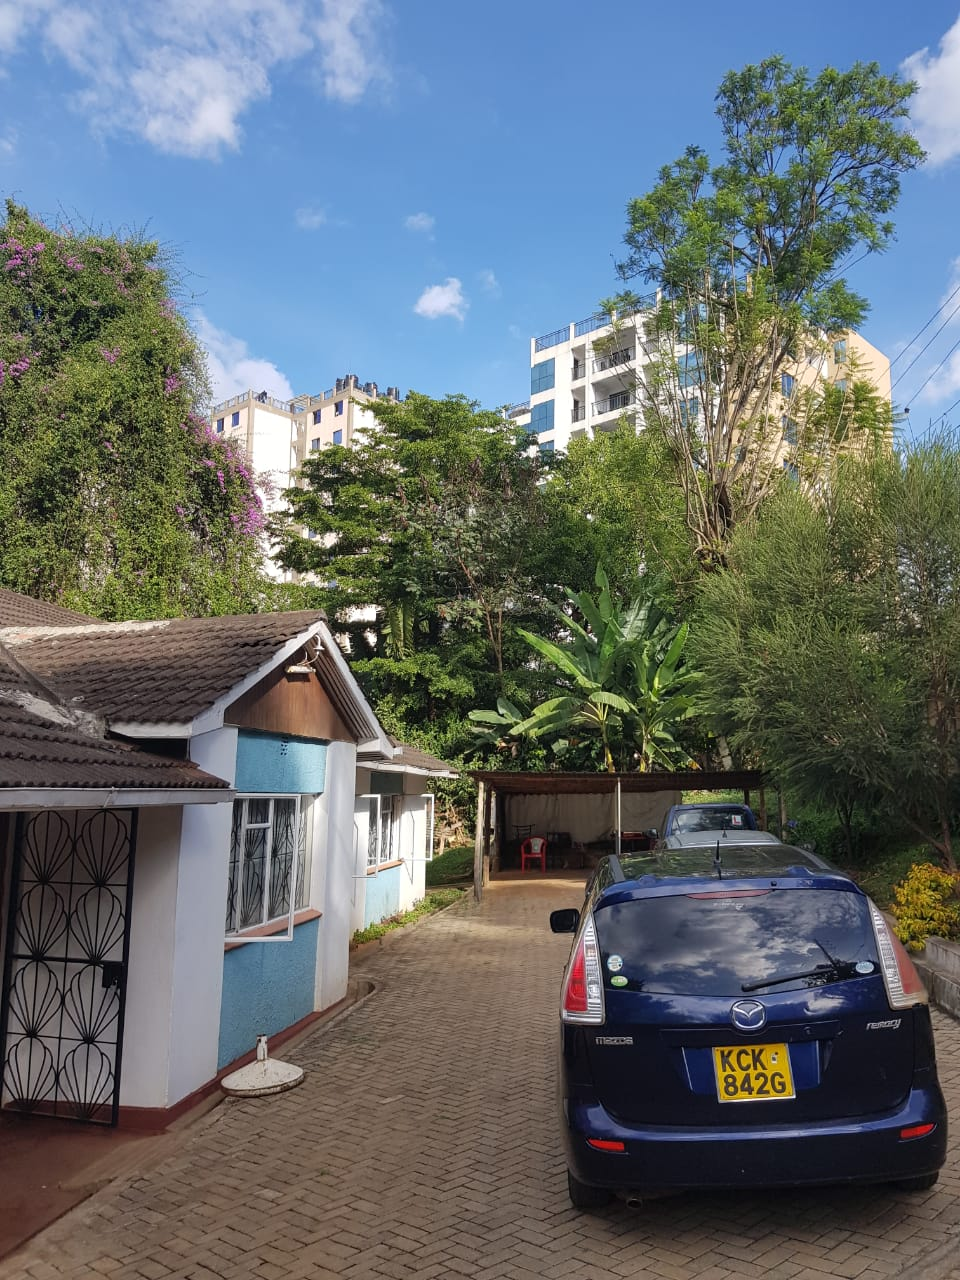 Property for Sale in Kileleshwa, Gatundu Cresent Road, with 0.645 acres, leasehold, asking Ksh155M